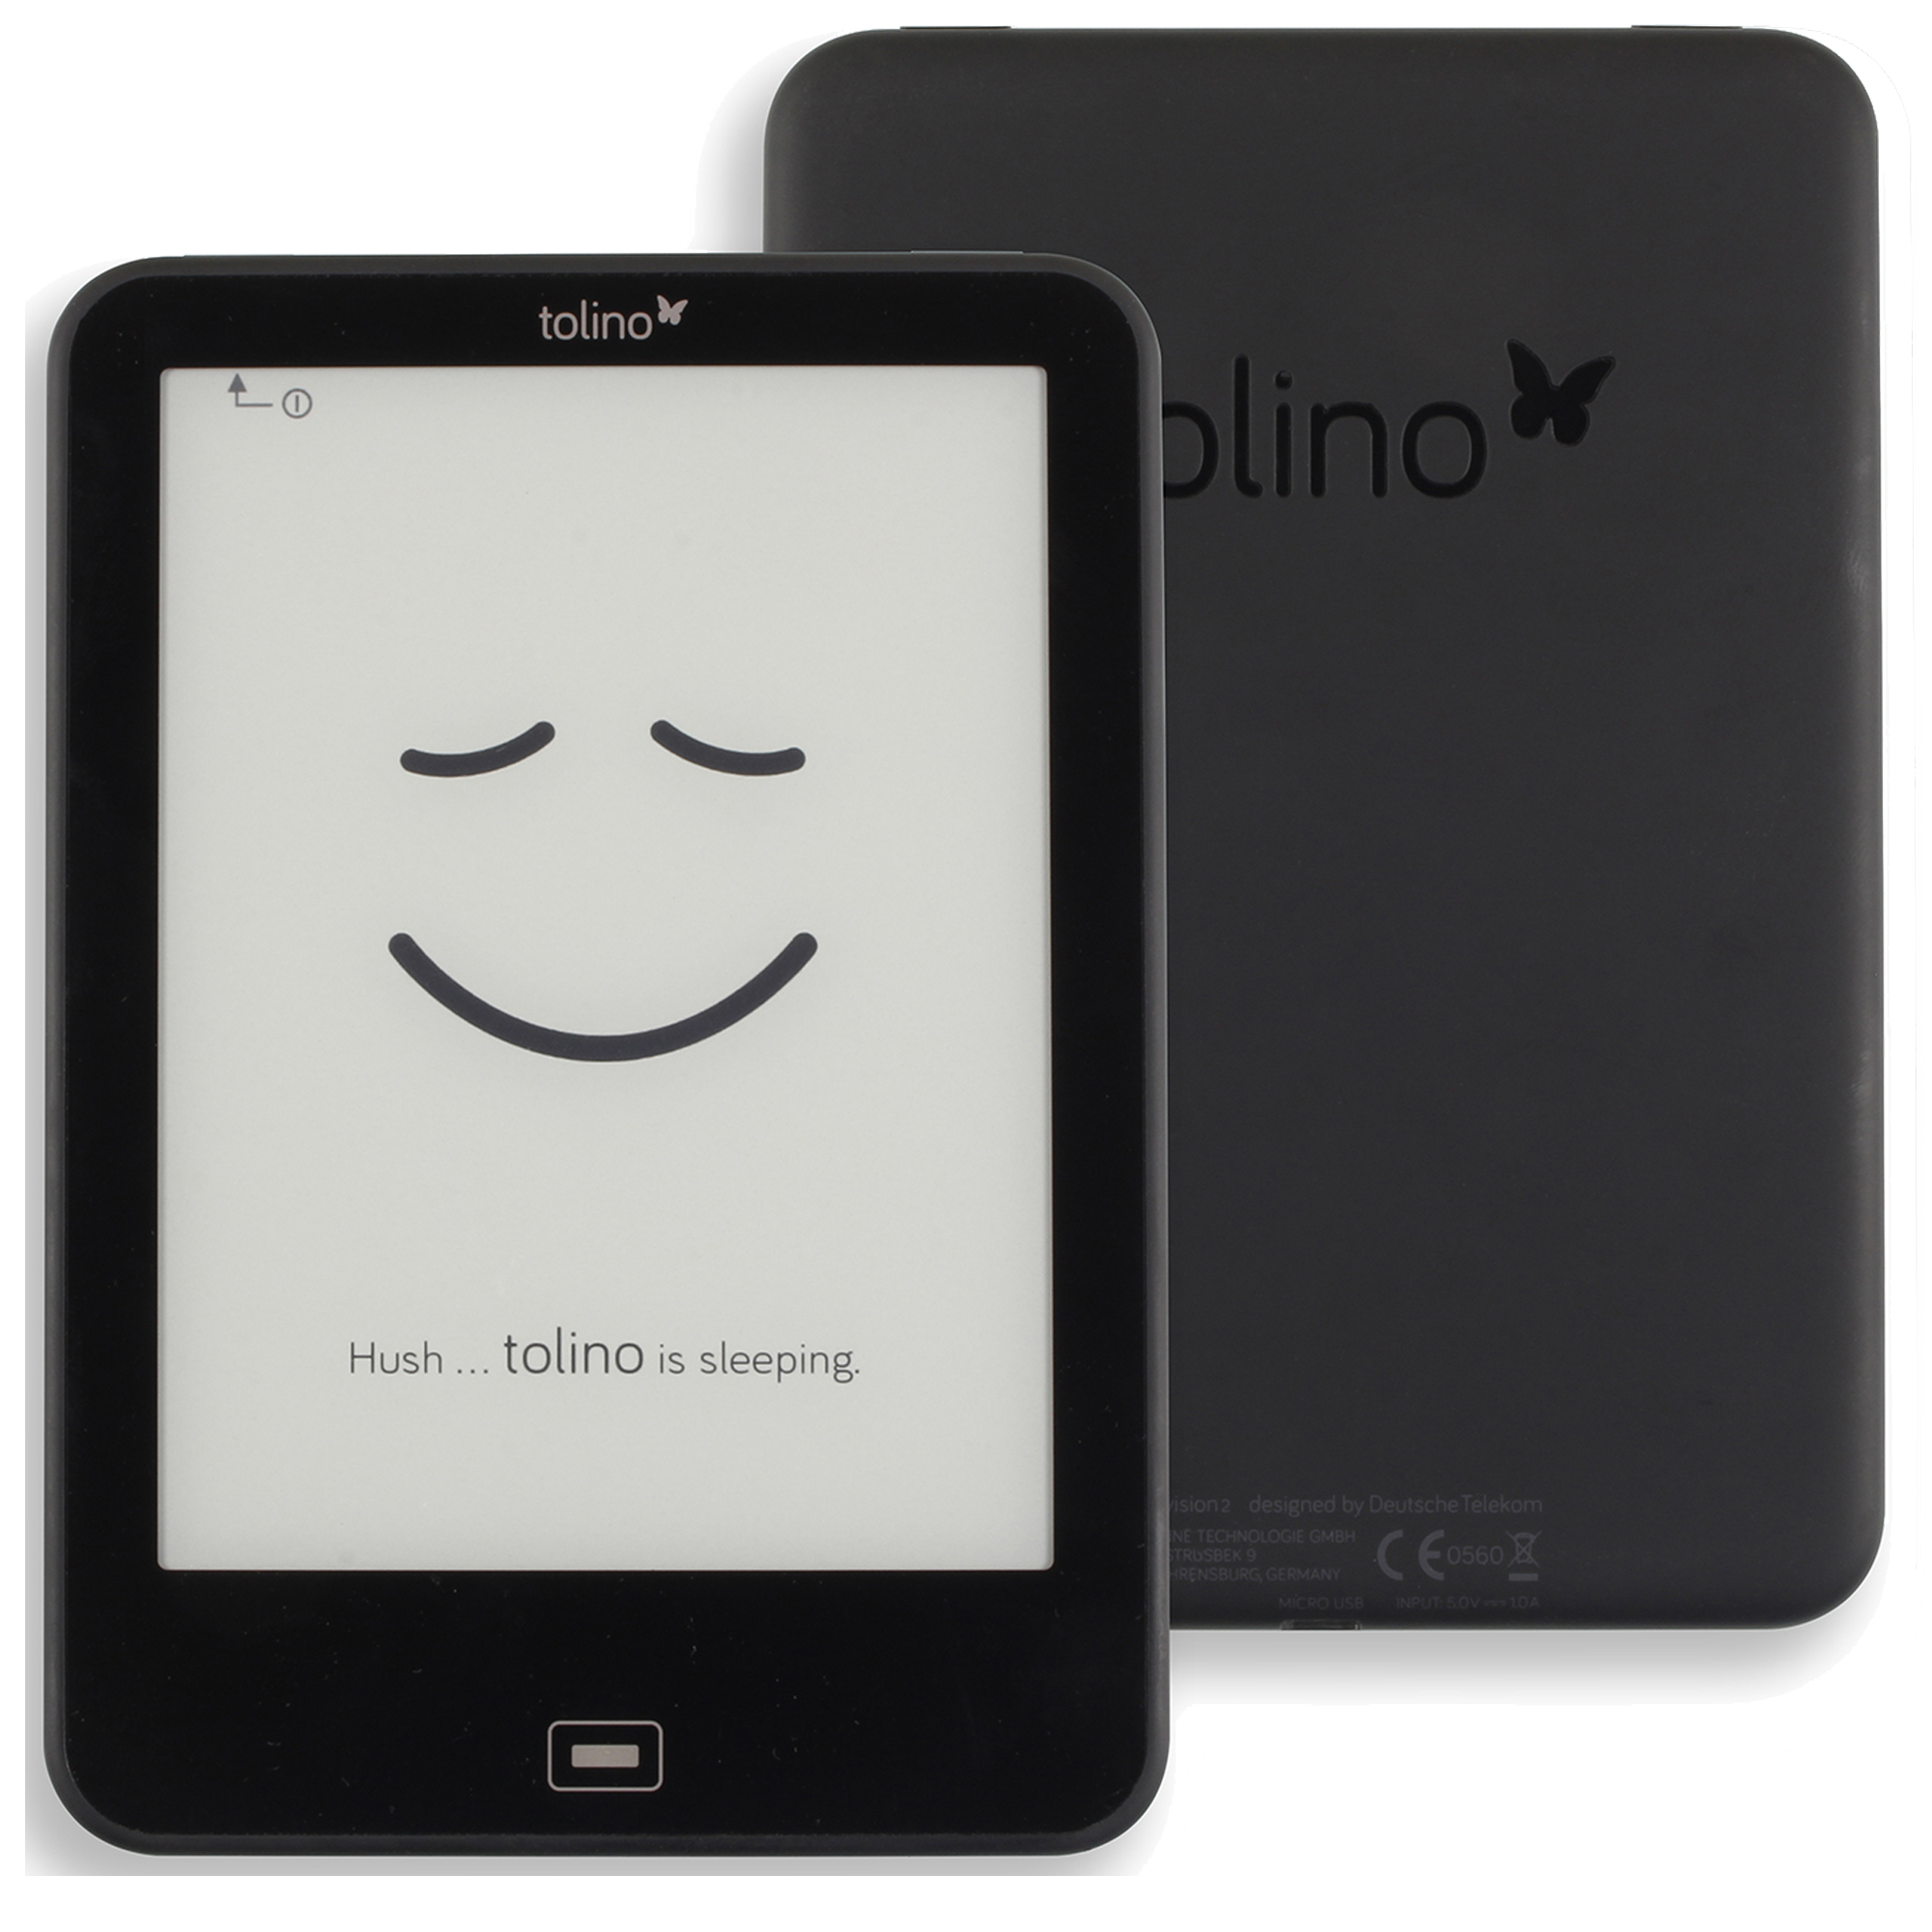 Daily waterproof Tolino Vision 2 e reader e-ink 6 inch 1024x758 touchscreen ebook Reader WiFi Tap2 cover for page turning!